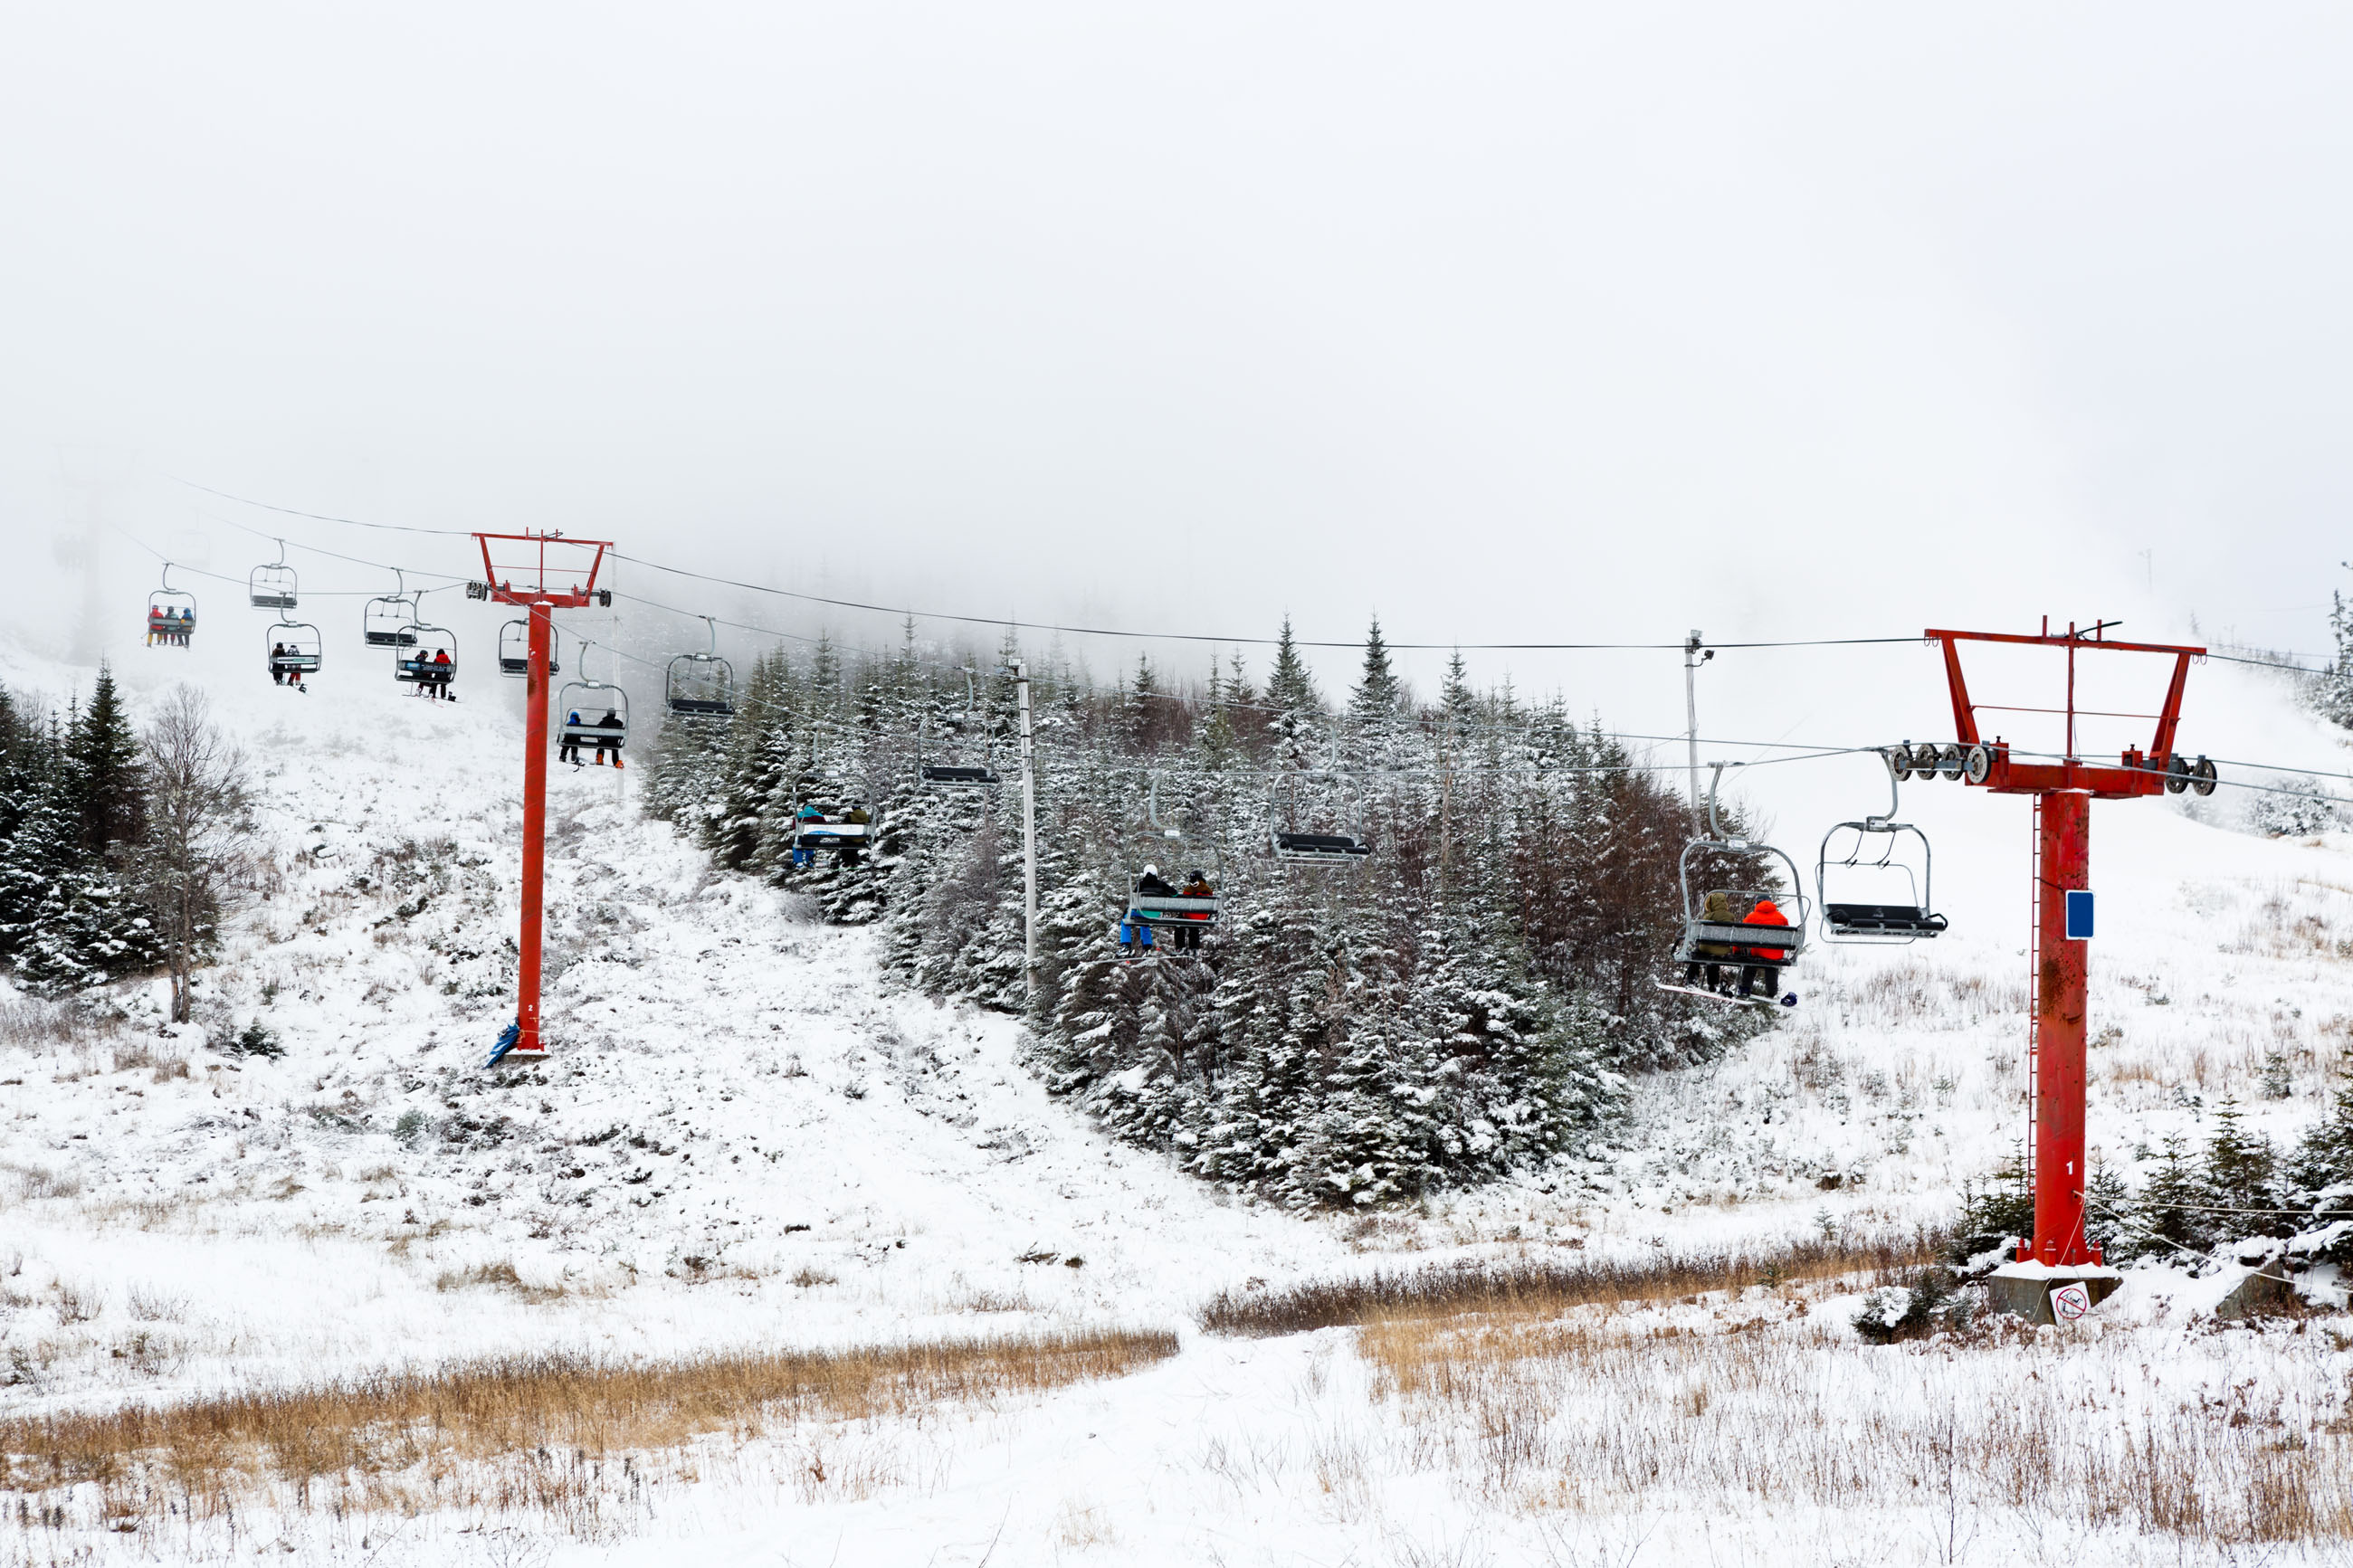 Ski lift, Sport, Sit, Ski, Skier, HQ Photo